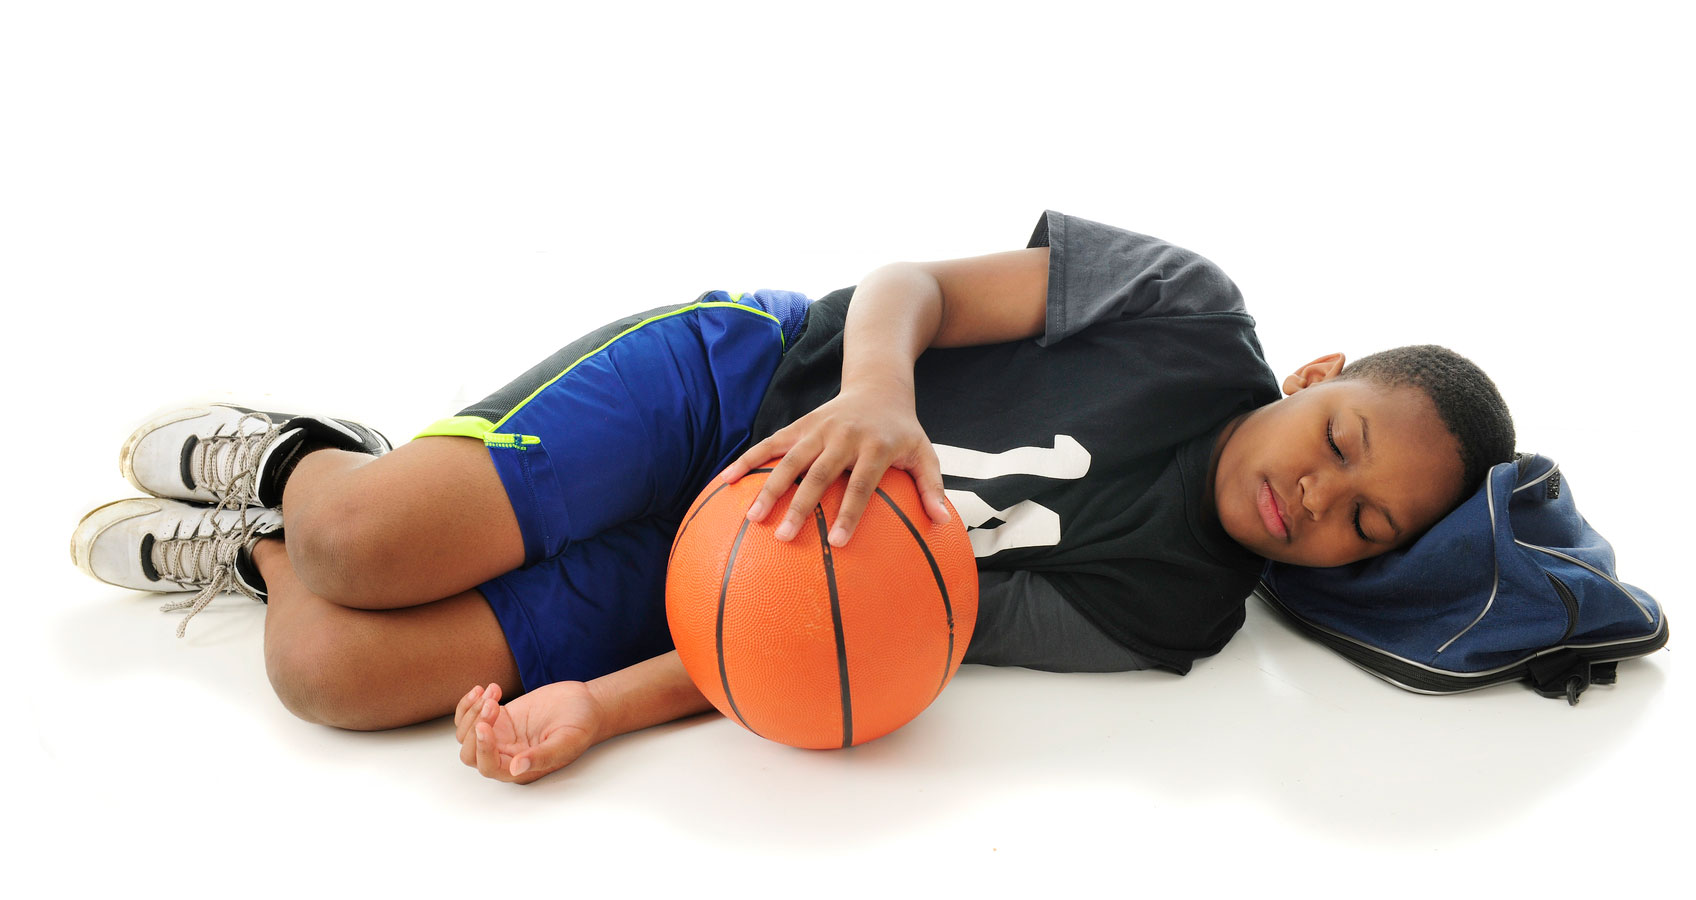 Chicago Bulls Hire Sleep Scientists to Aid with Players' Recovery